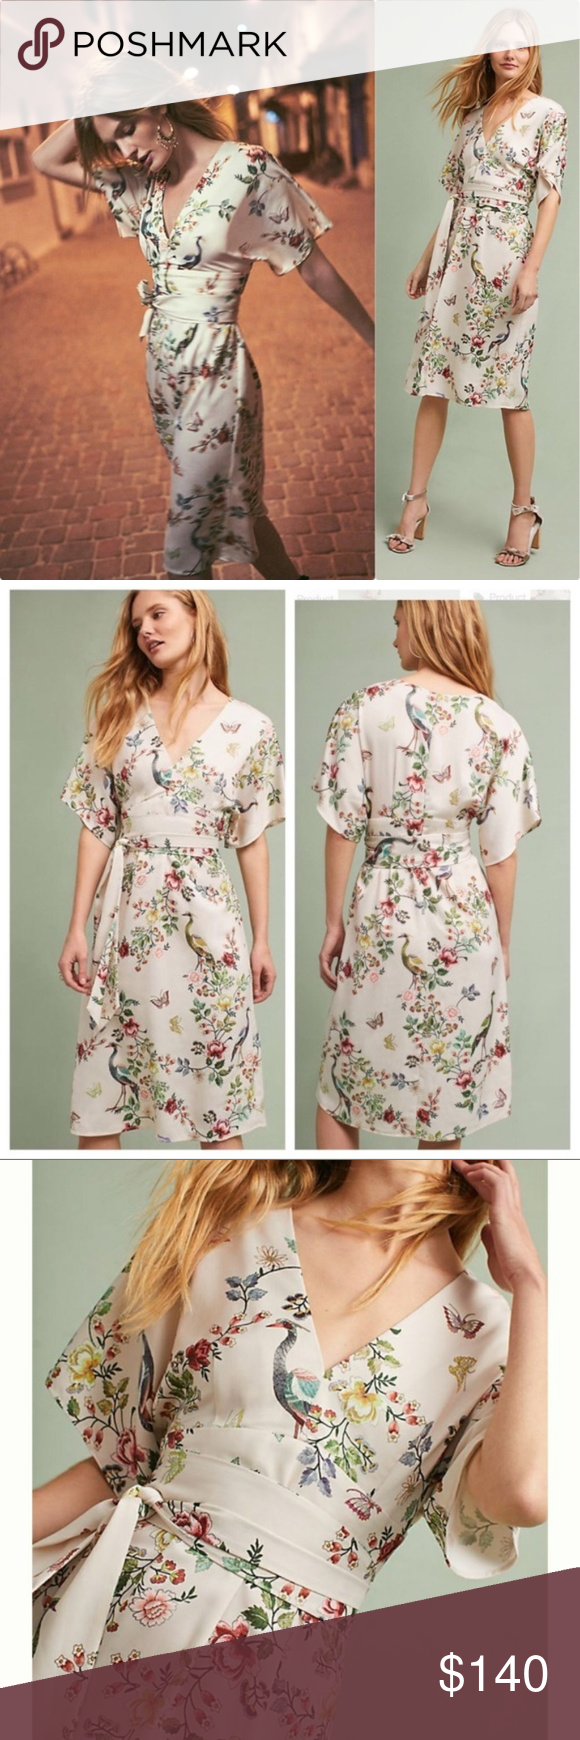 756c67722c53a ANTHROPOLOGIE Avian Kimono Midi Dress {Z31} This elegantly feminine midi  features a lovely floral